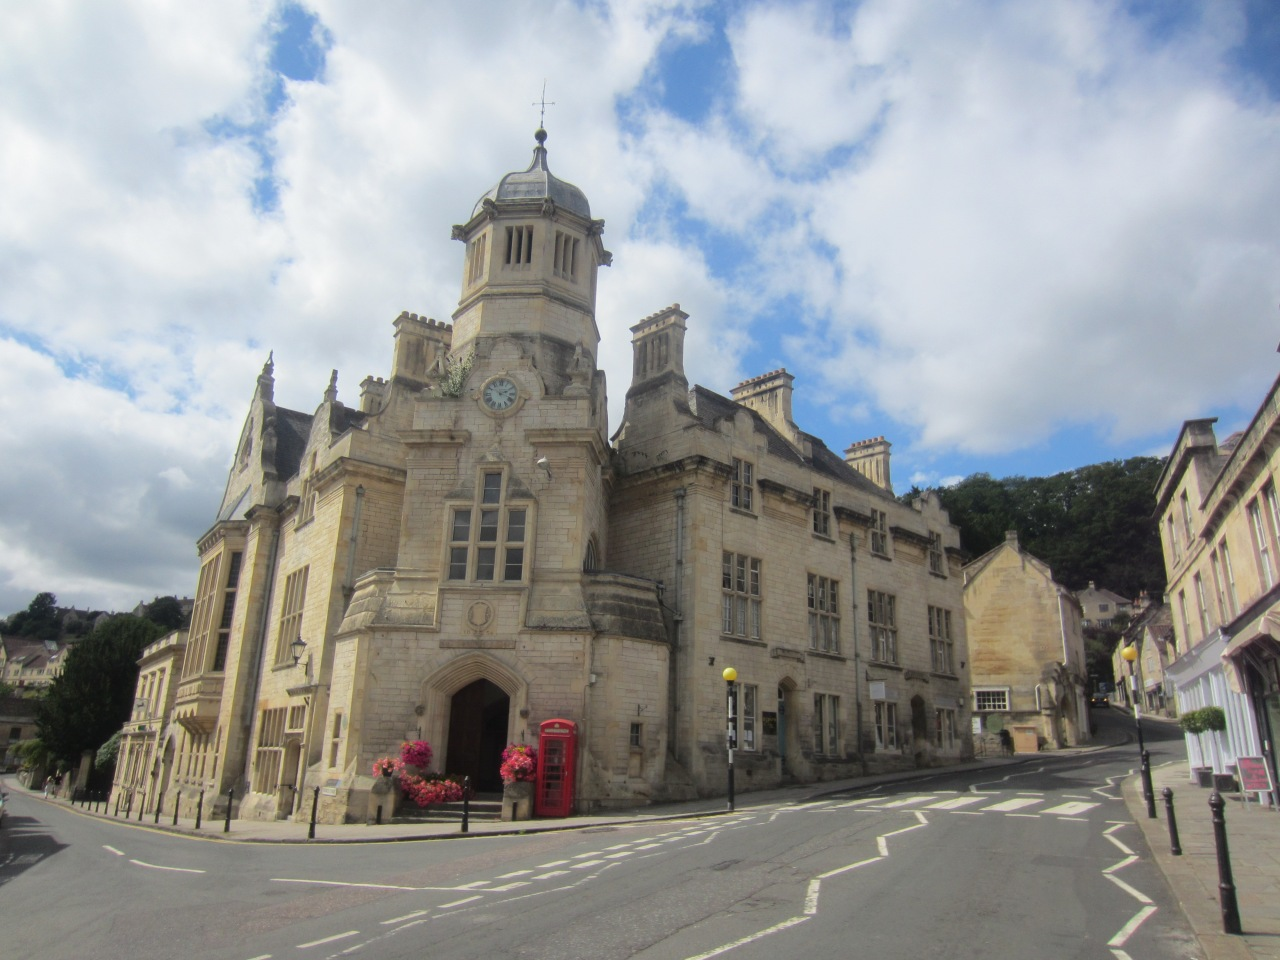 A day trip to Bradford on Avon